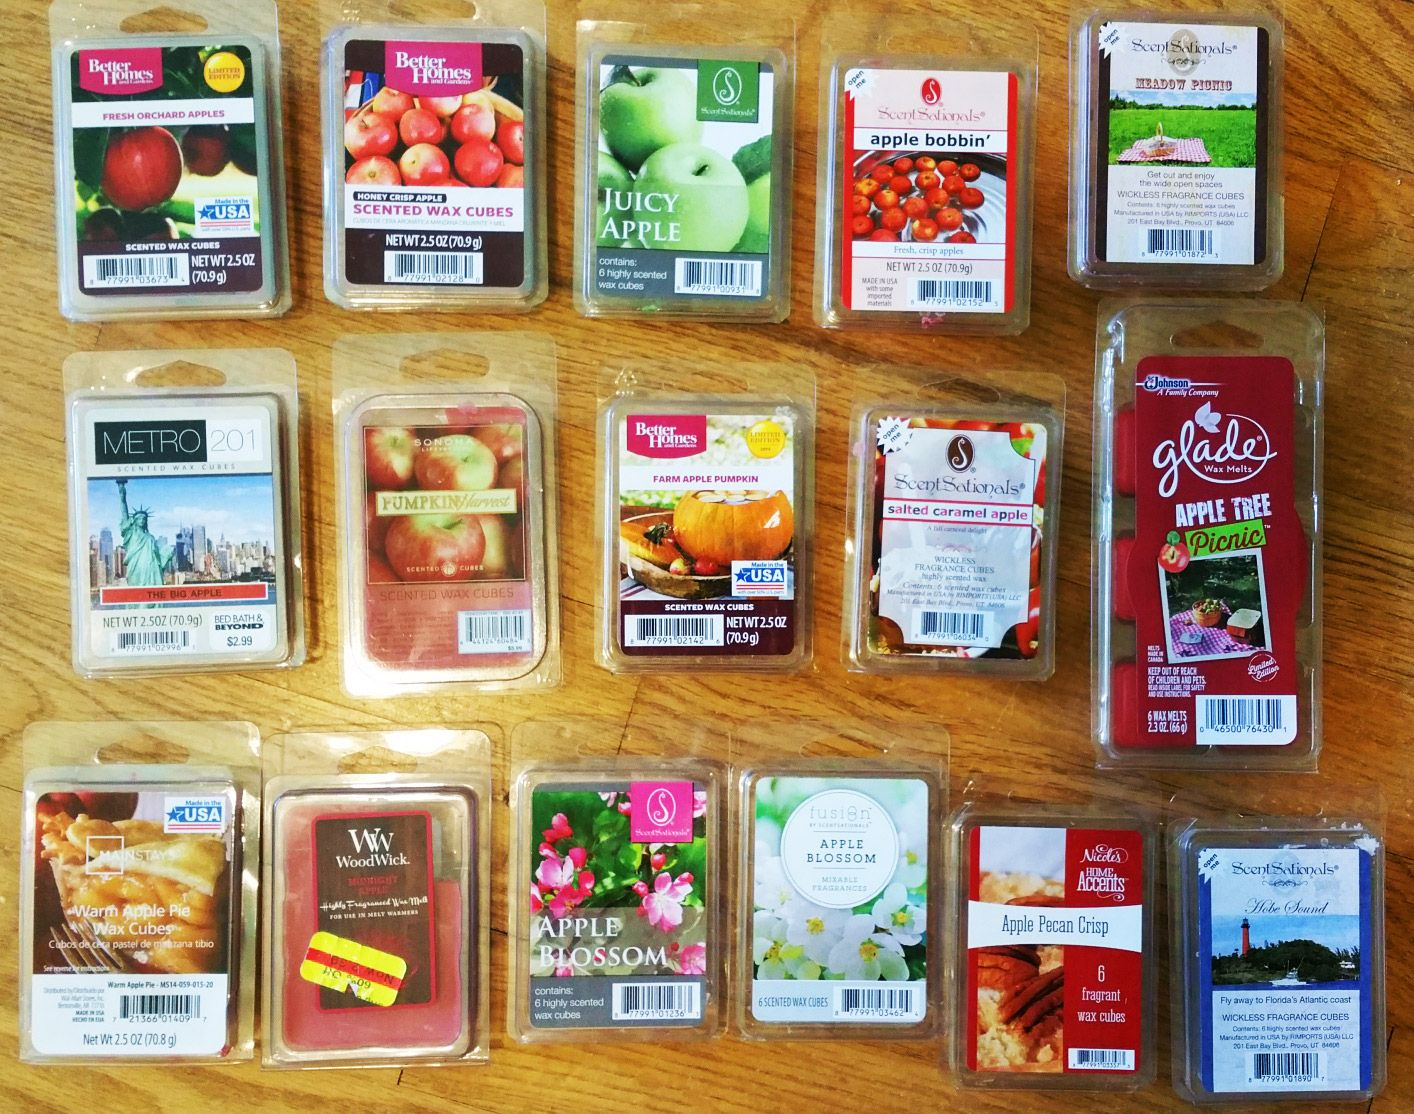 Reviews of 16 Apple Scented Wax Melts Retail Brands. http://www.scentedwaxreviews.com/2015/08/apple-scented-wax.html